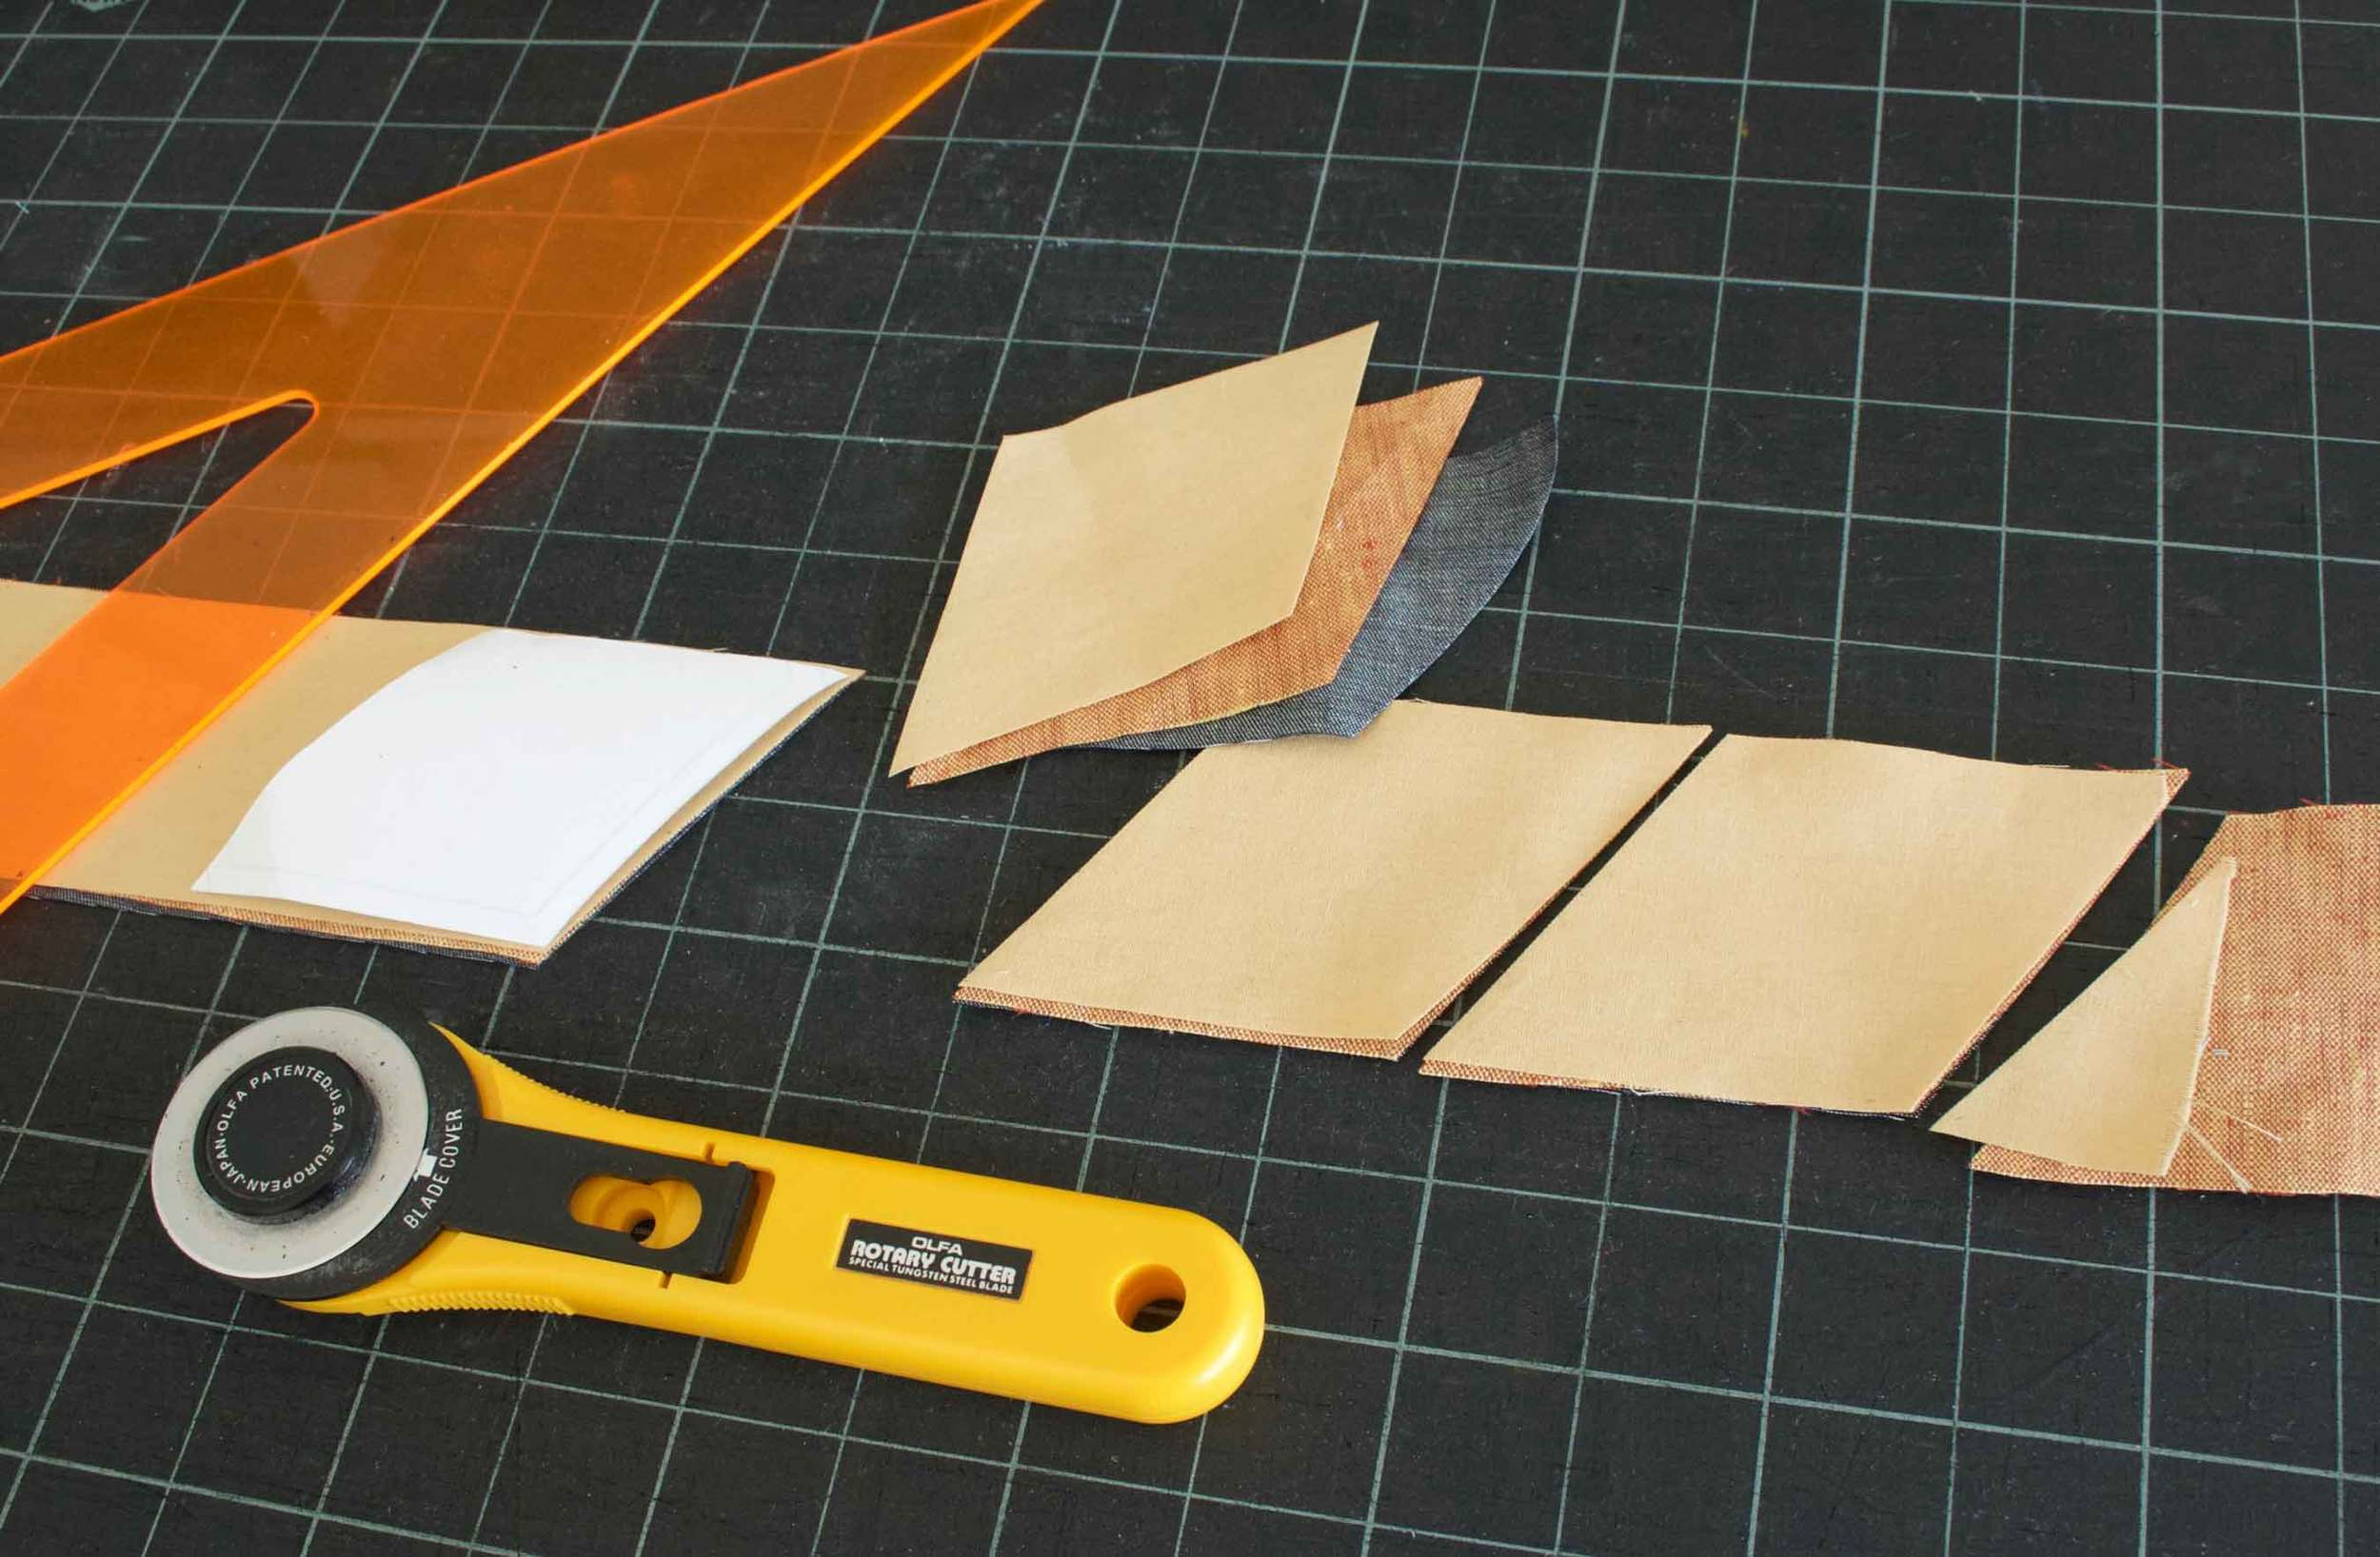 Cutting out quilter pieces for making quilted coasters, tutorial by Thread & Whisk